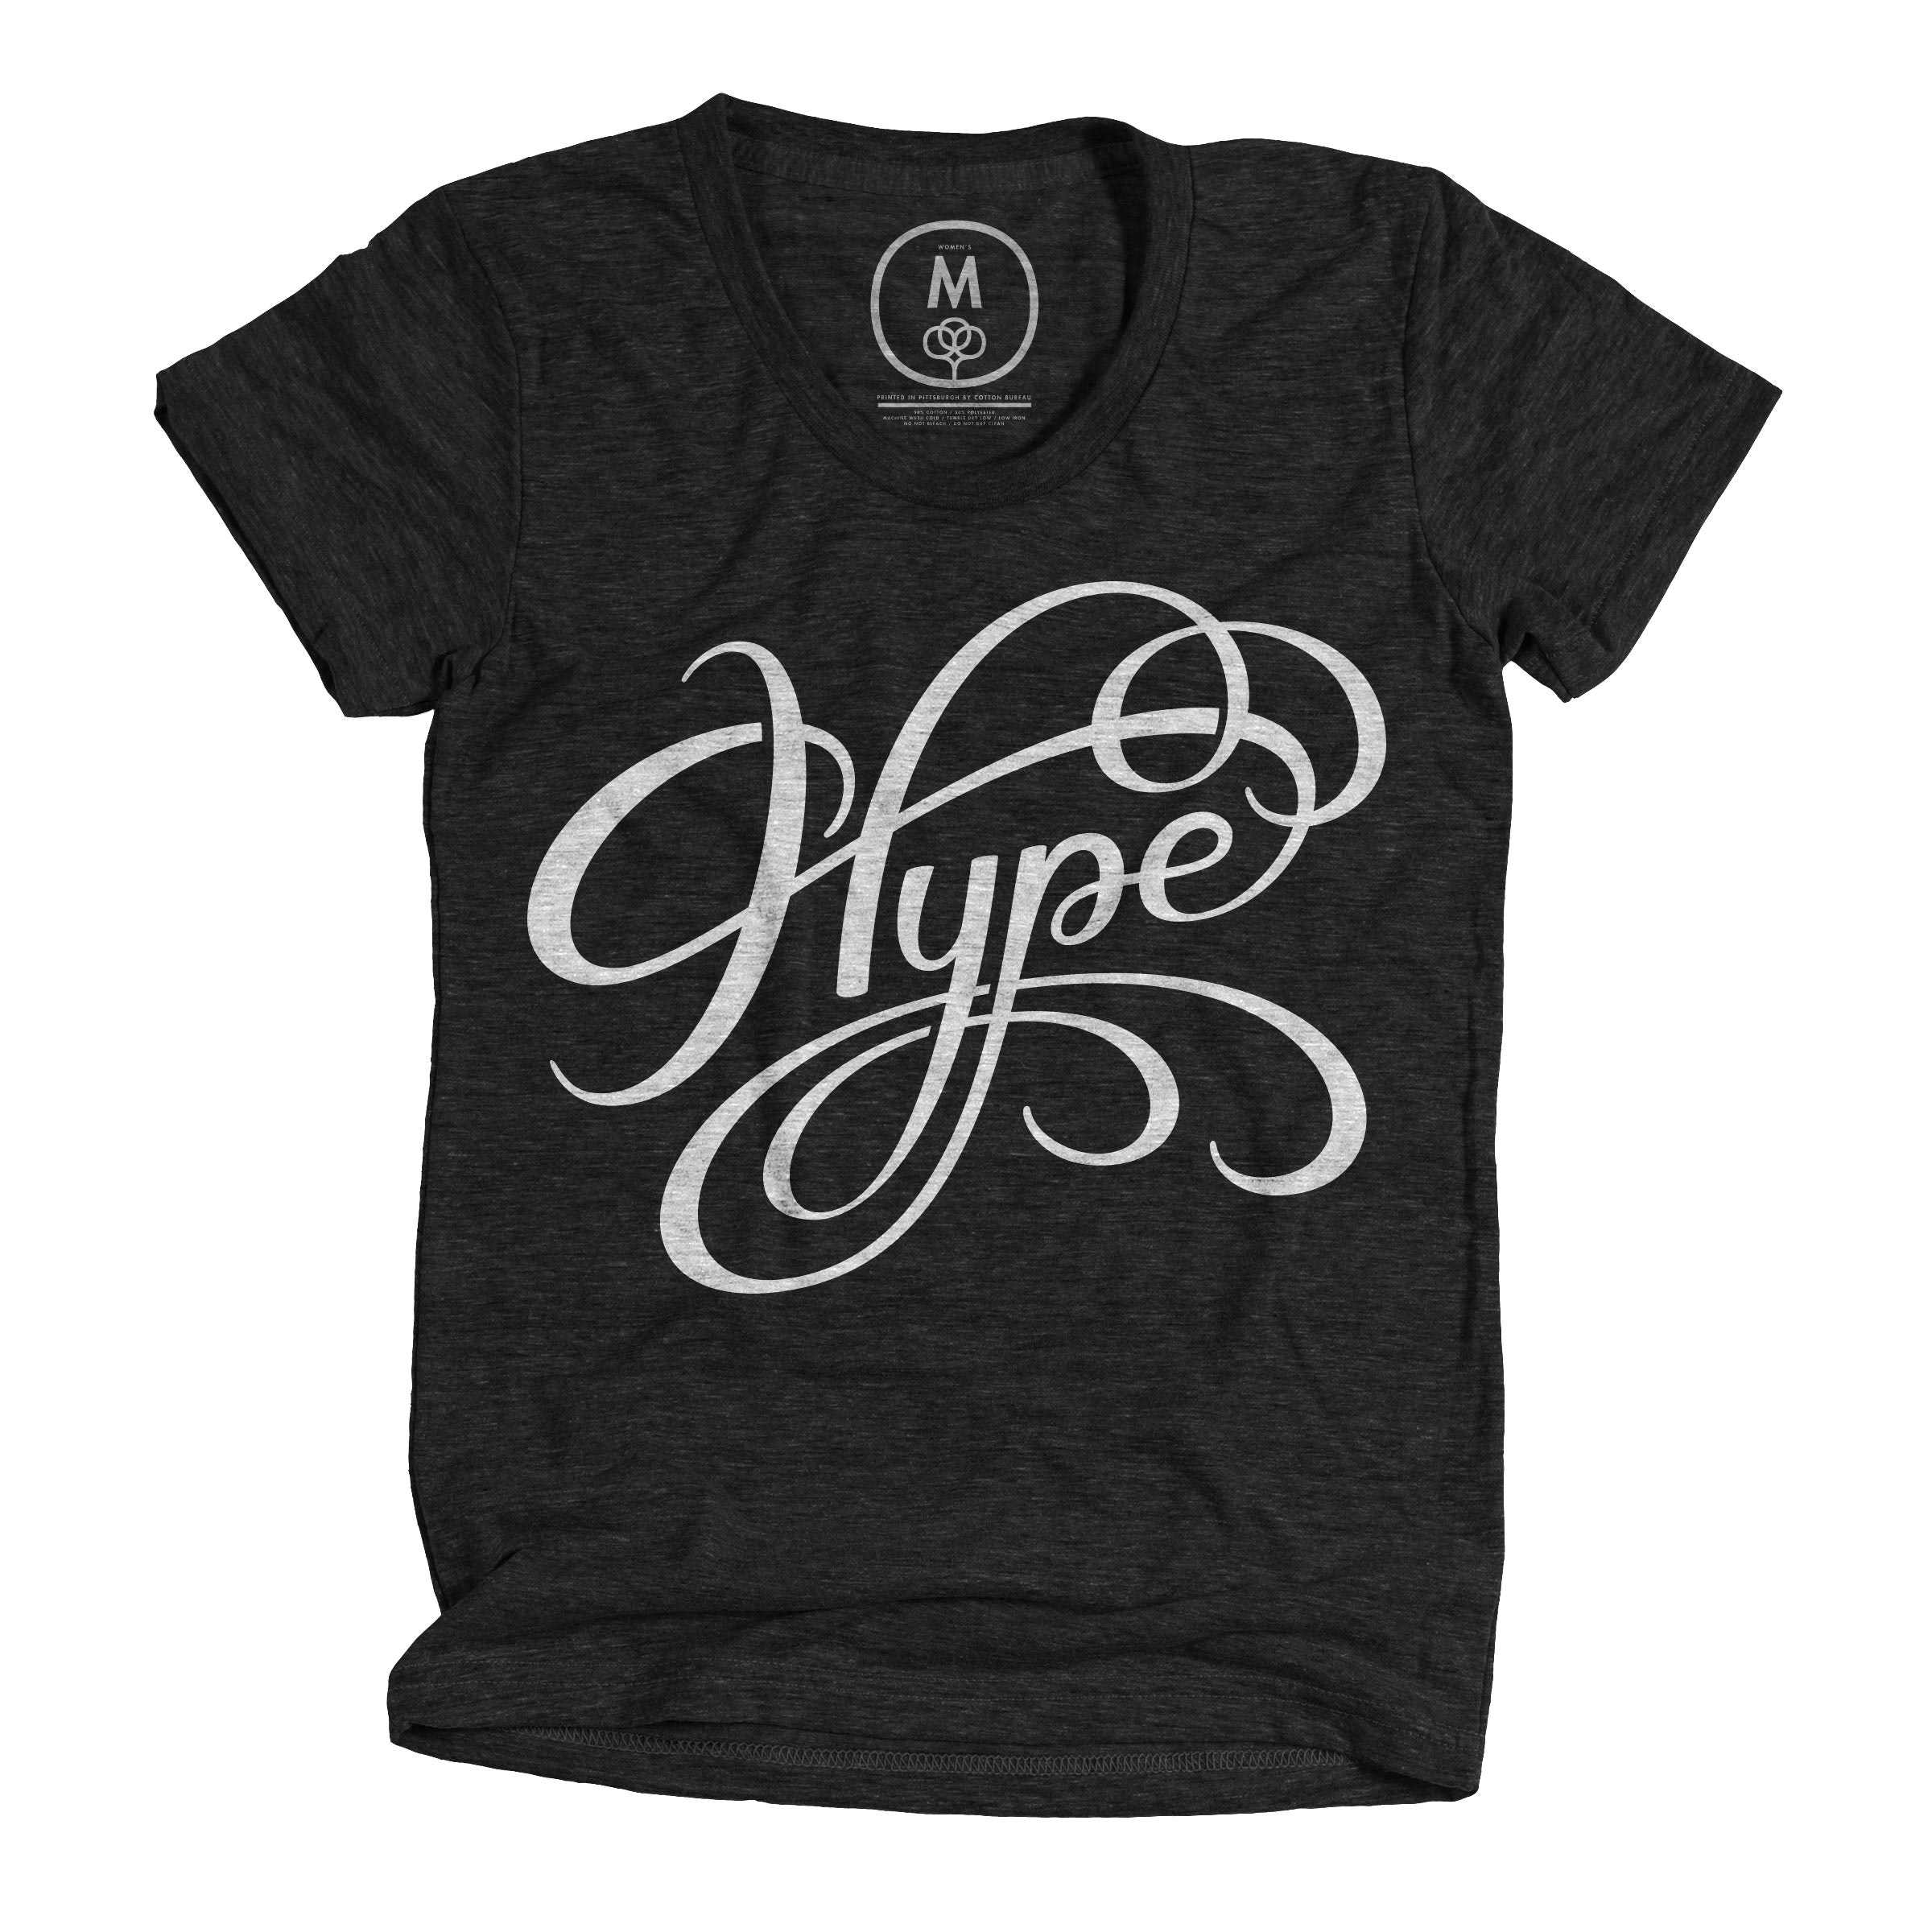 Hype Hers